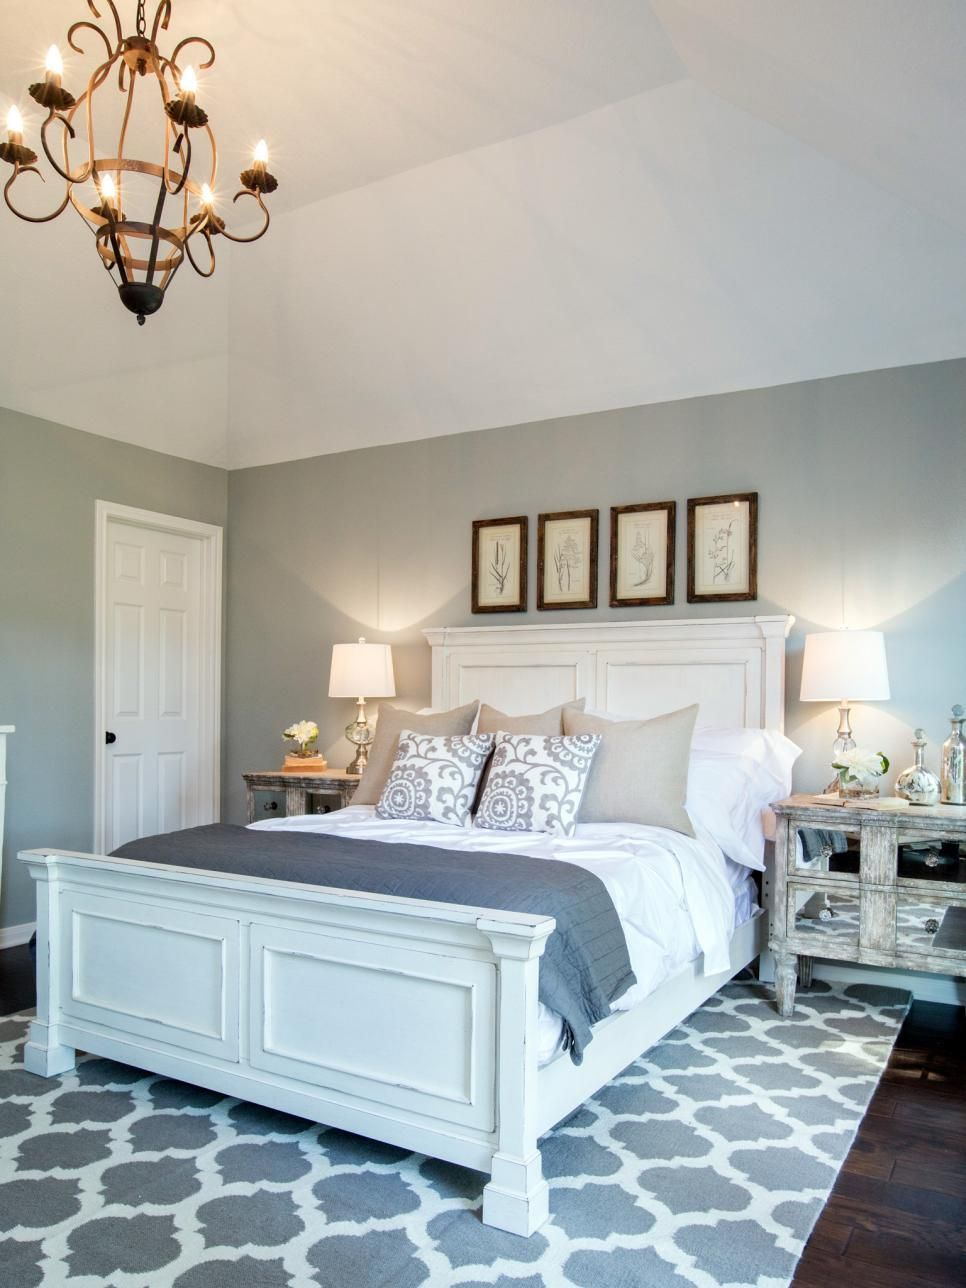 The homeowners' bedroom gets a complete makeover by the Fixer Upper team.